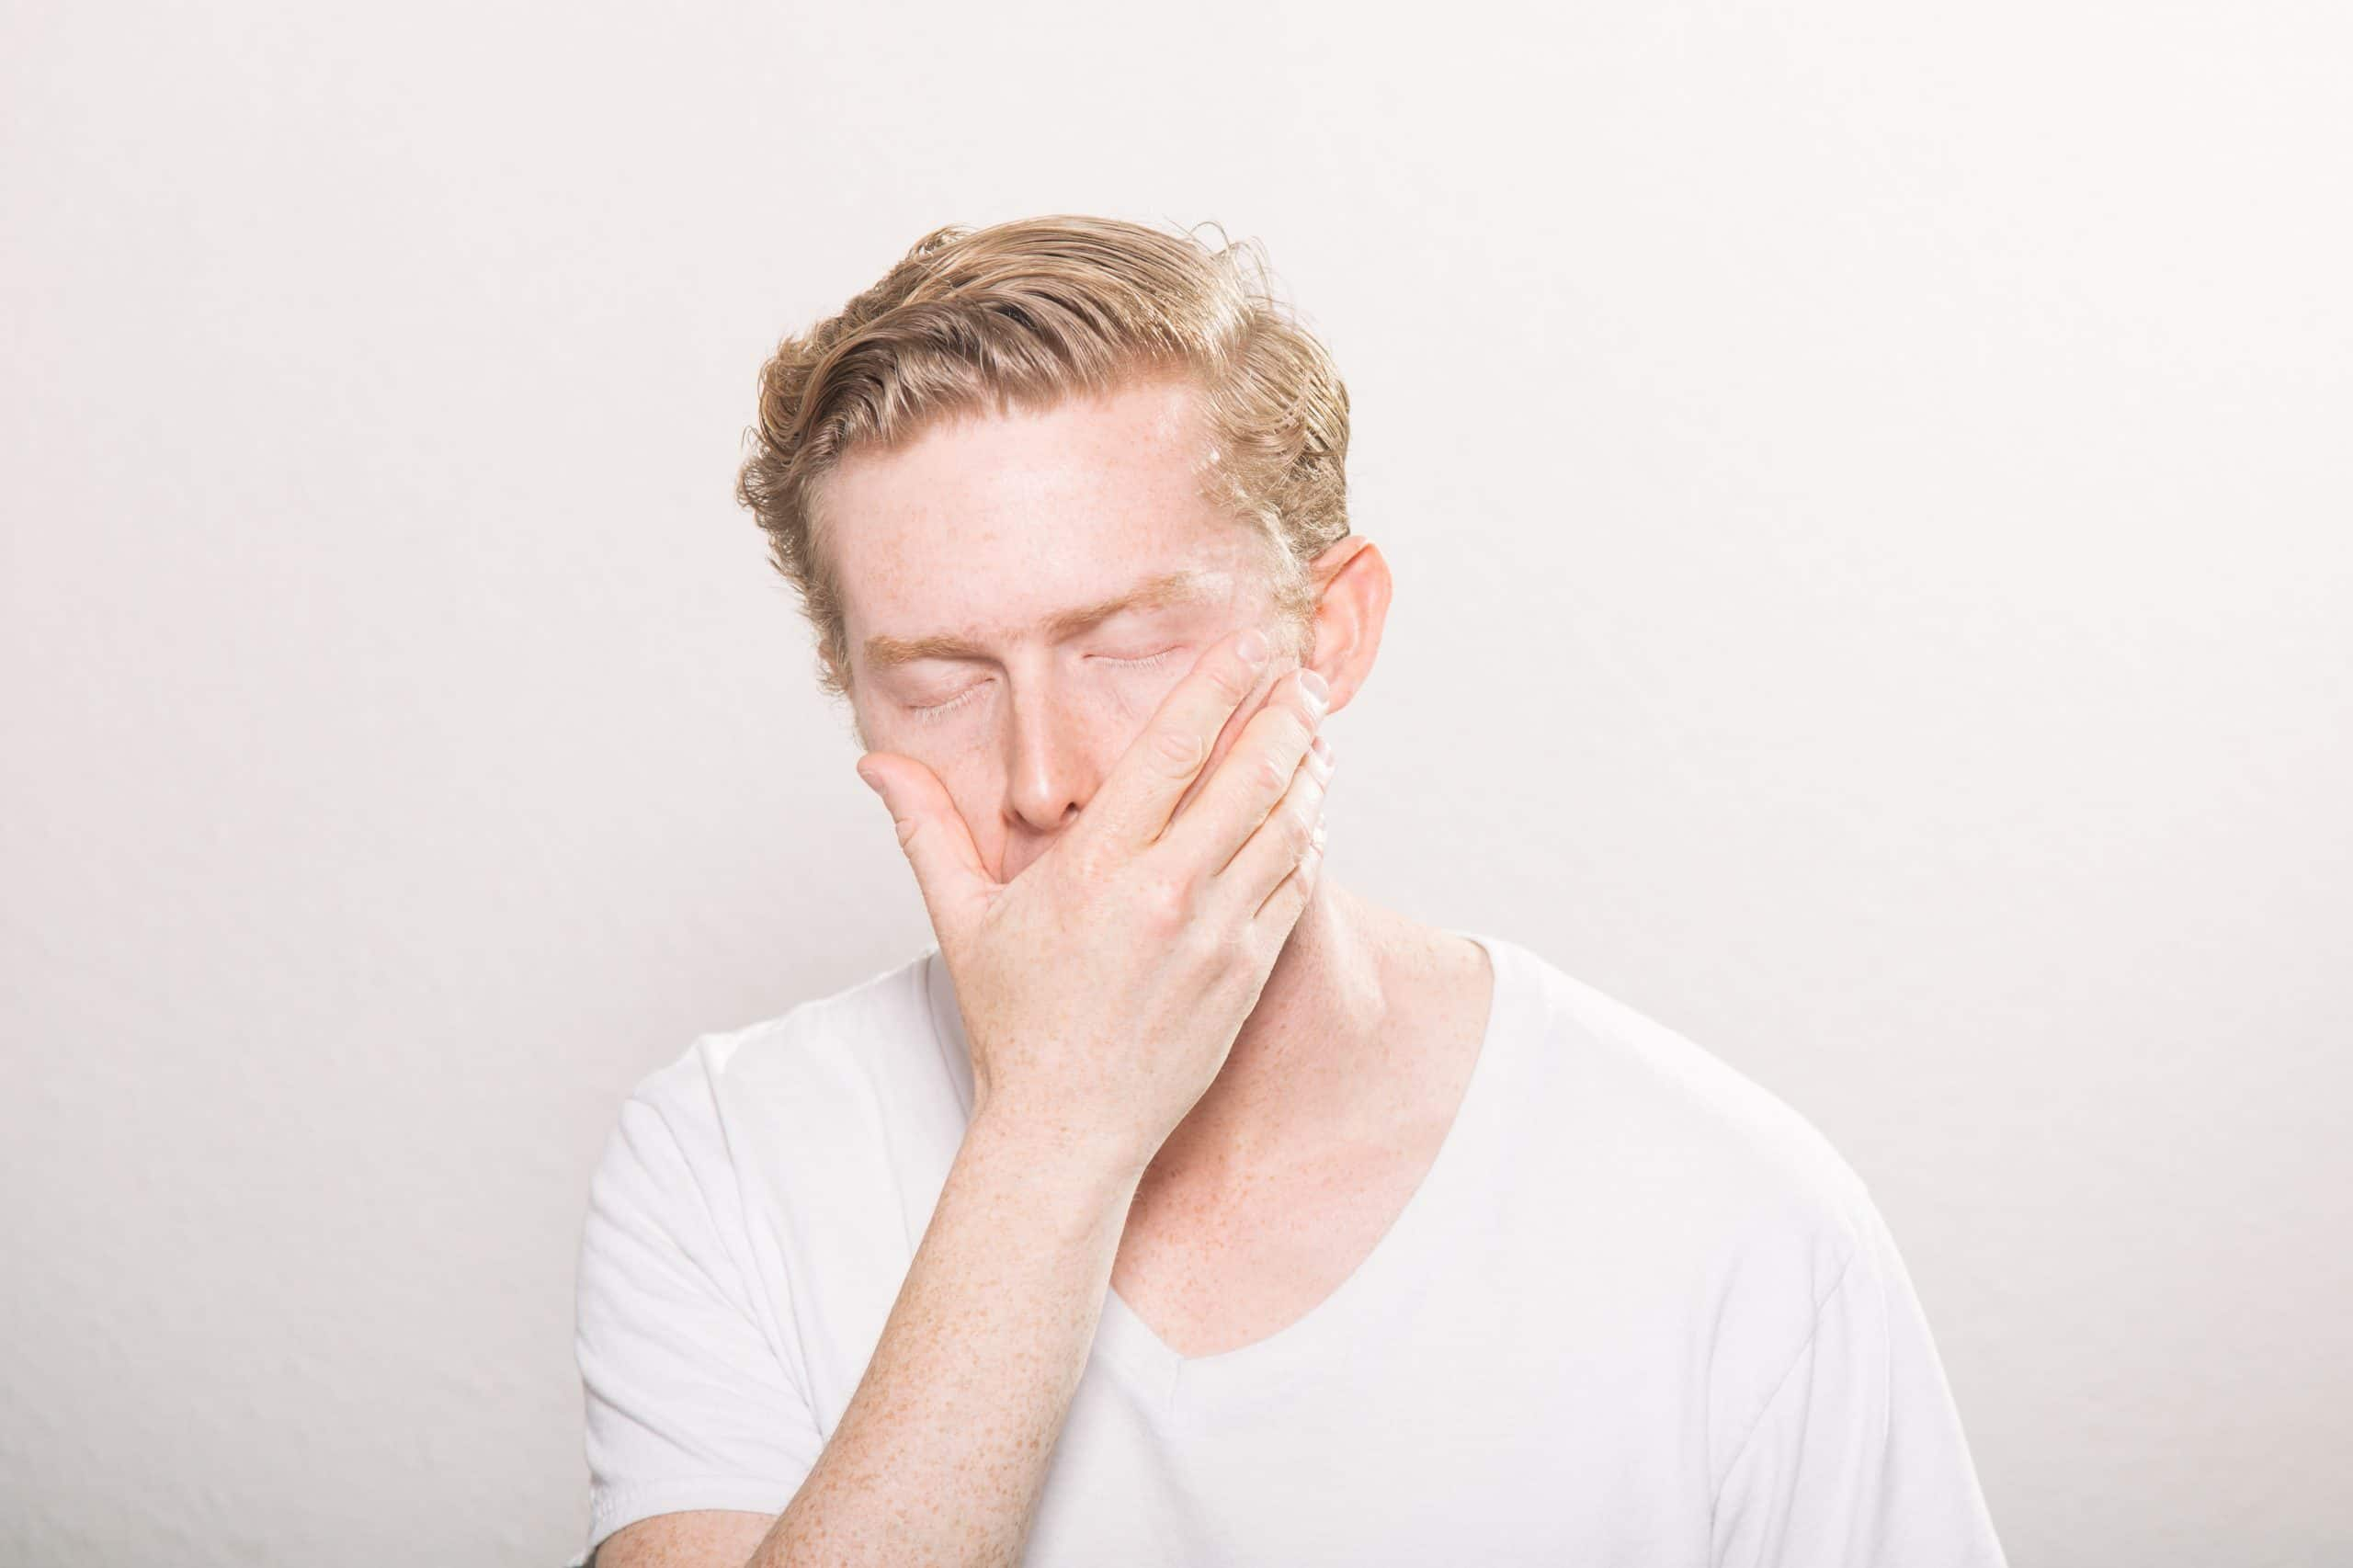 frustrated-blonde-man-white-background